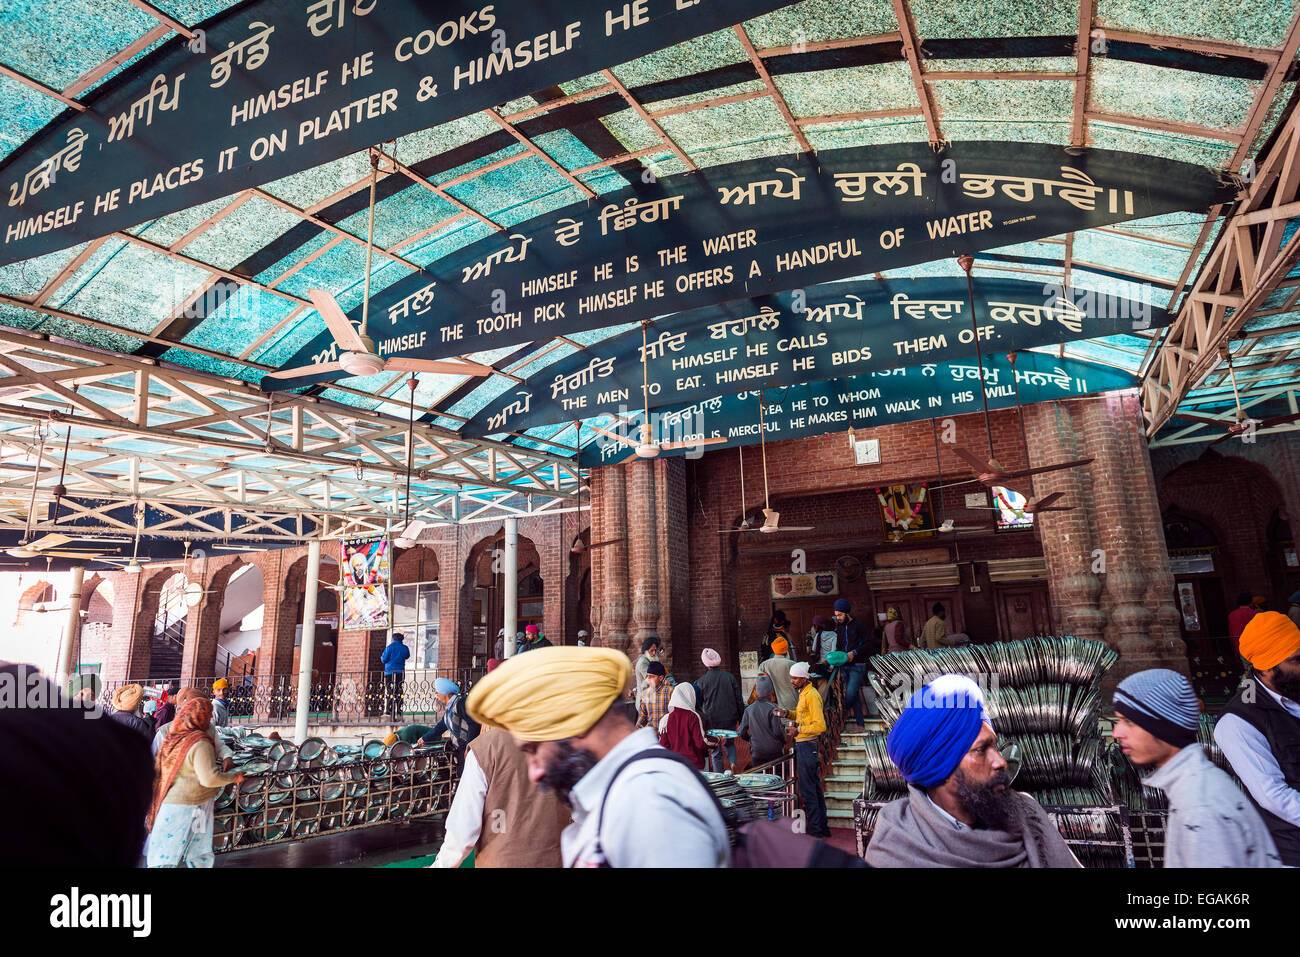 Exit from the communal dining room of The Golden Temple, Amritsar, Punjab, India - Stock Image